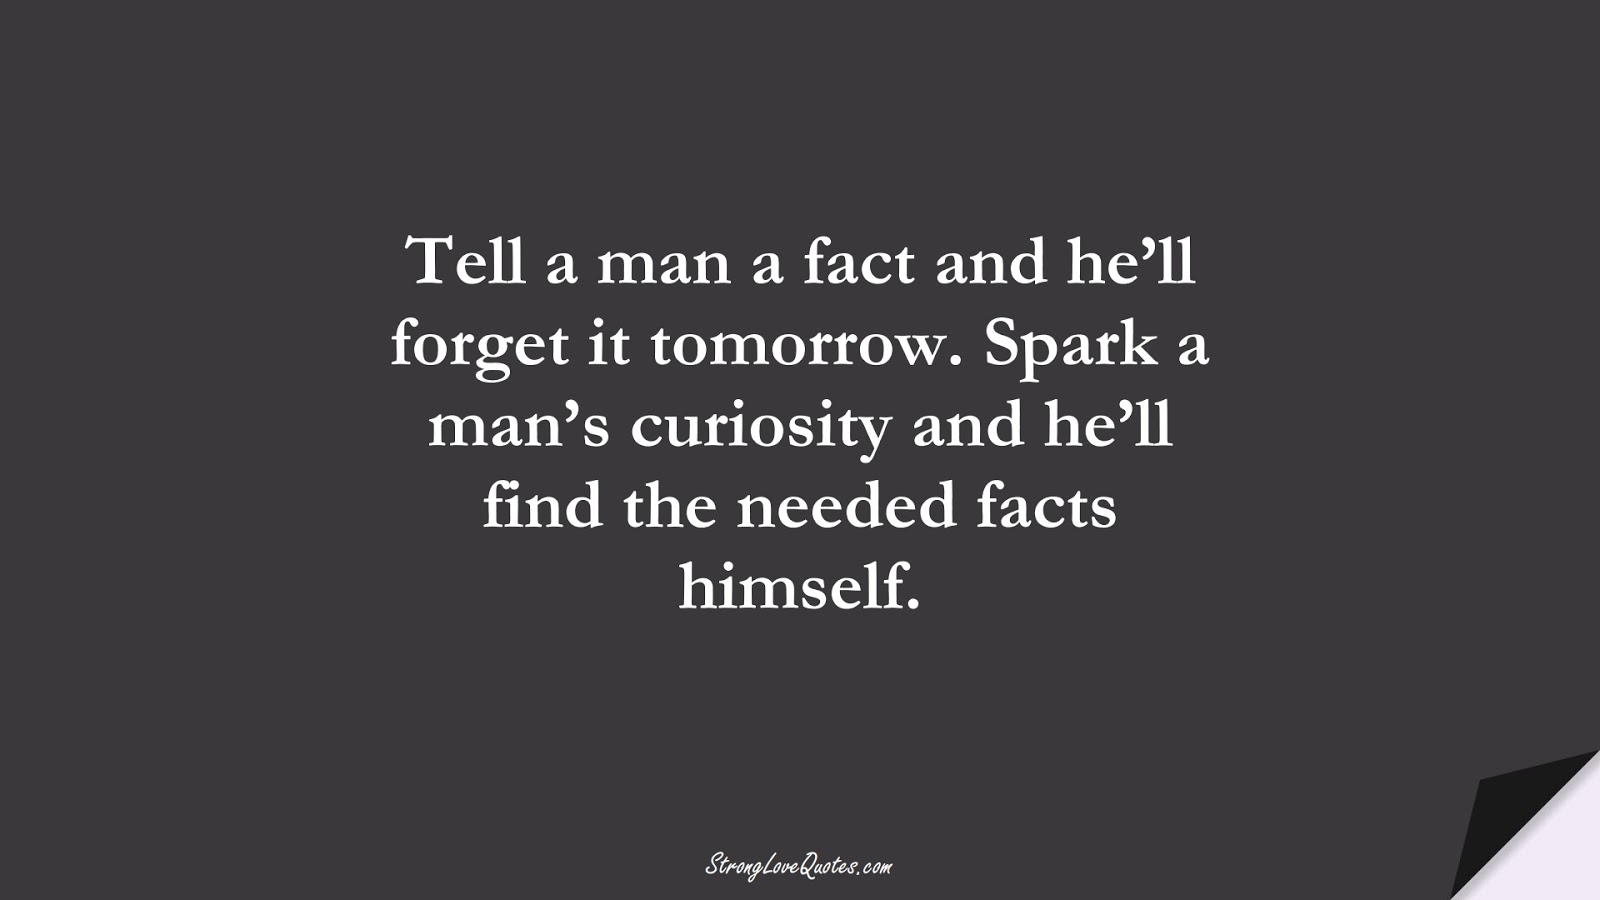 Tell a man a fact and he'll forget it tomorrow. Spark a man's curiosity and he'll find the needed facts himself.FALSE